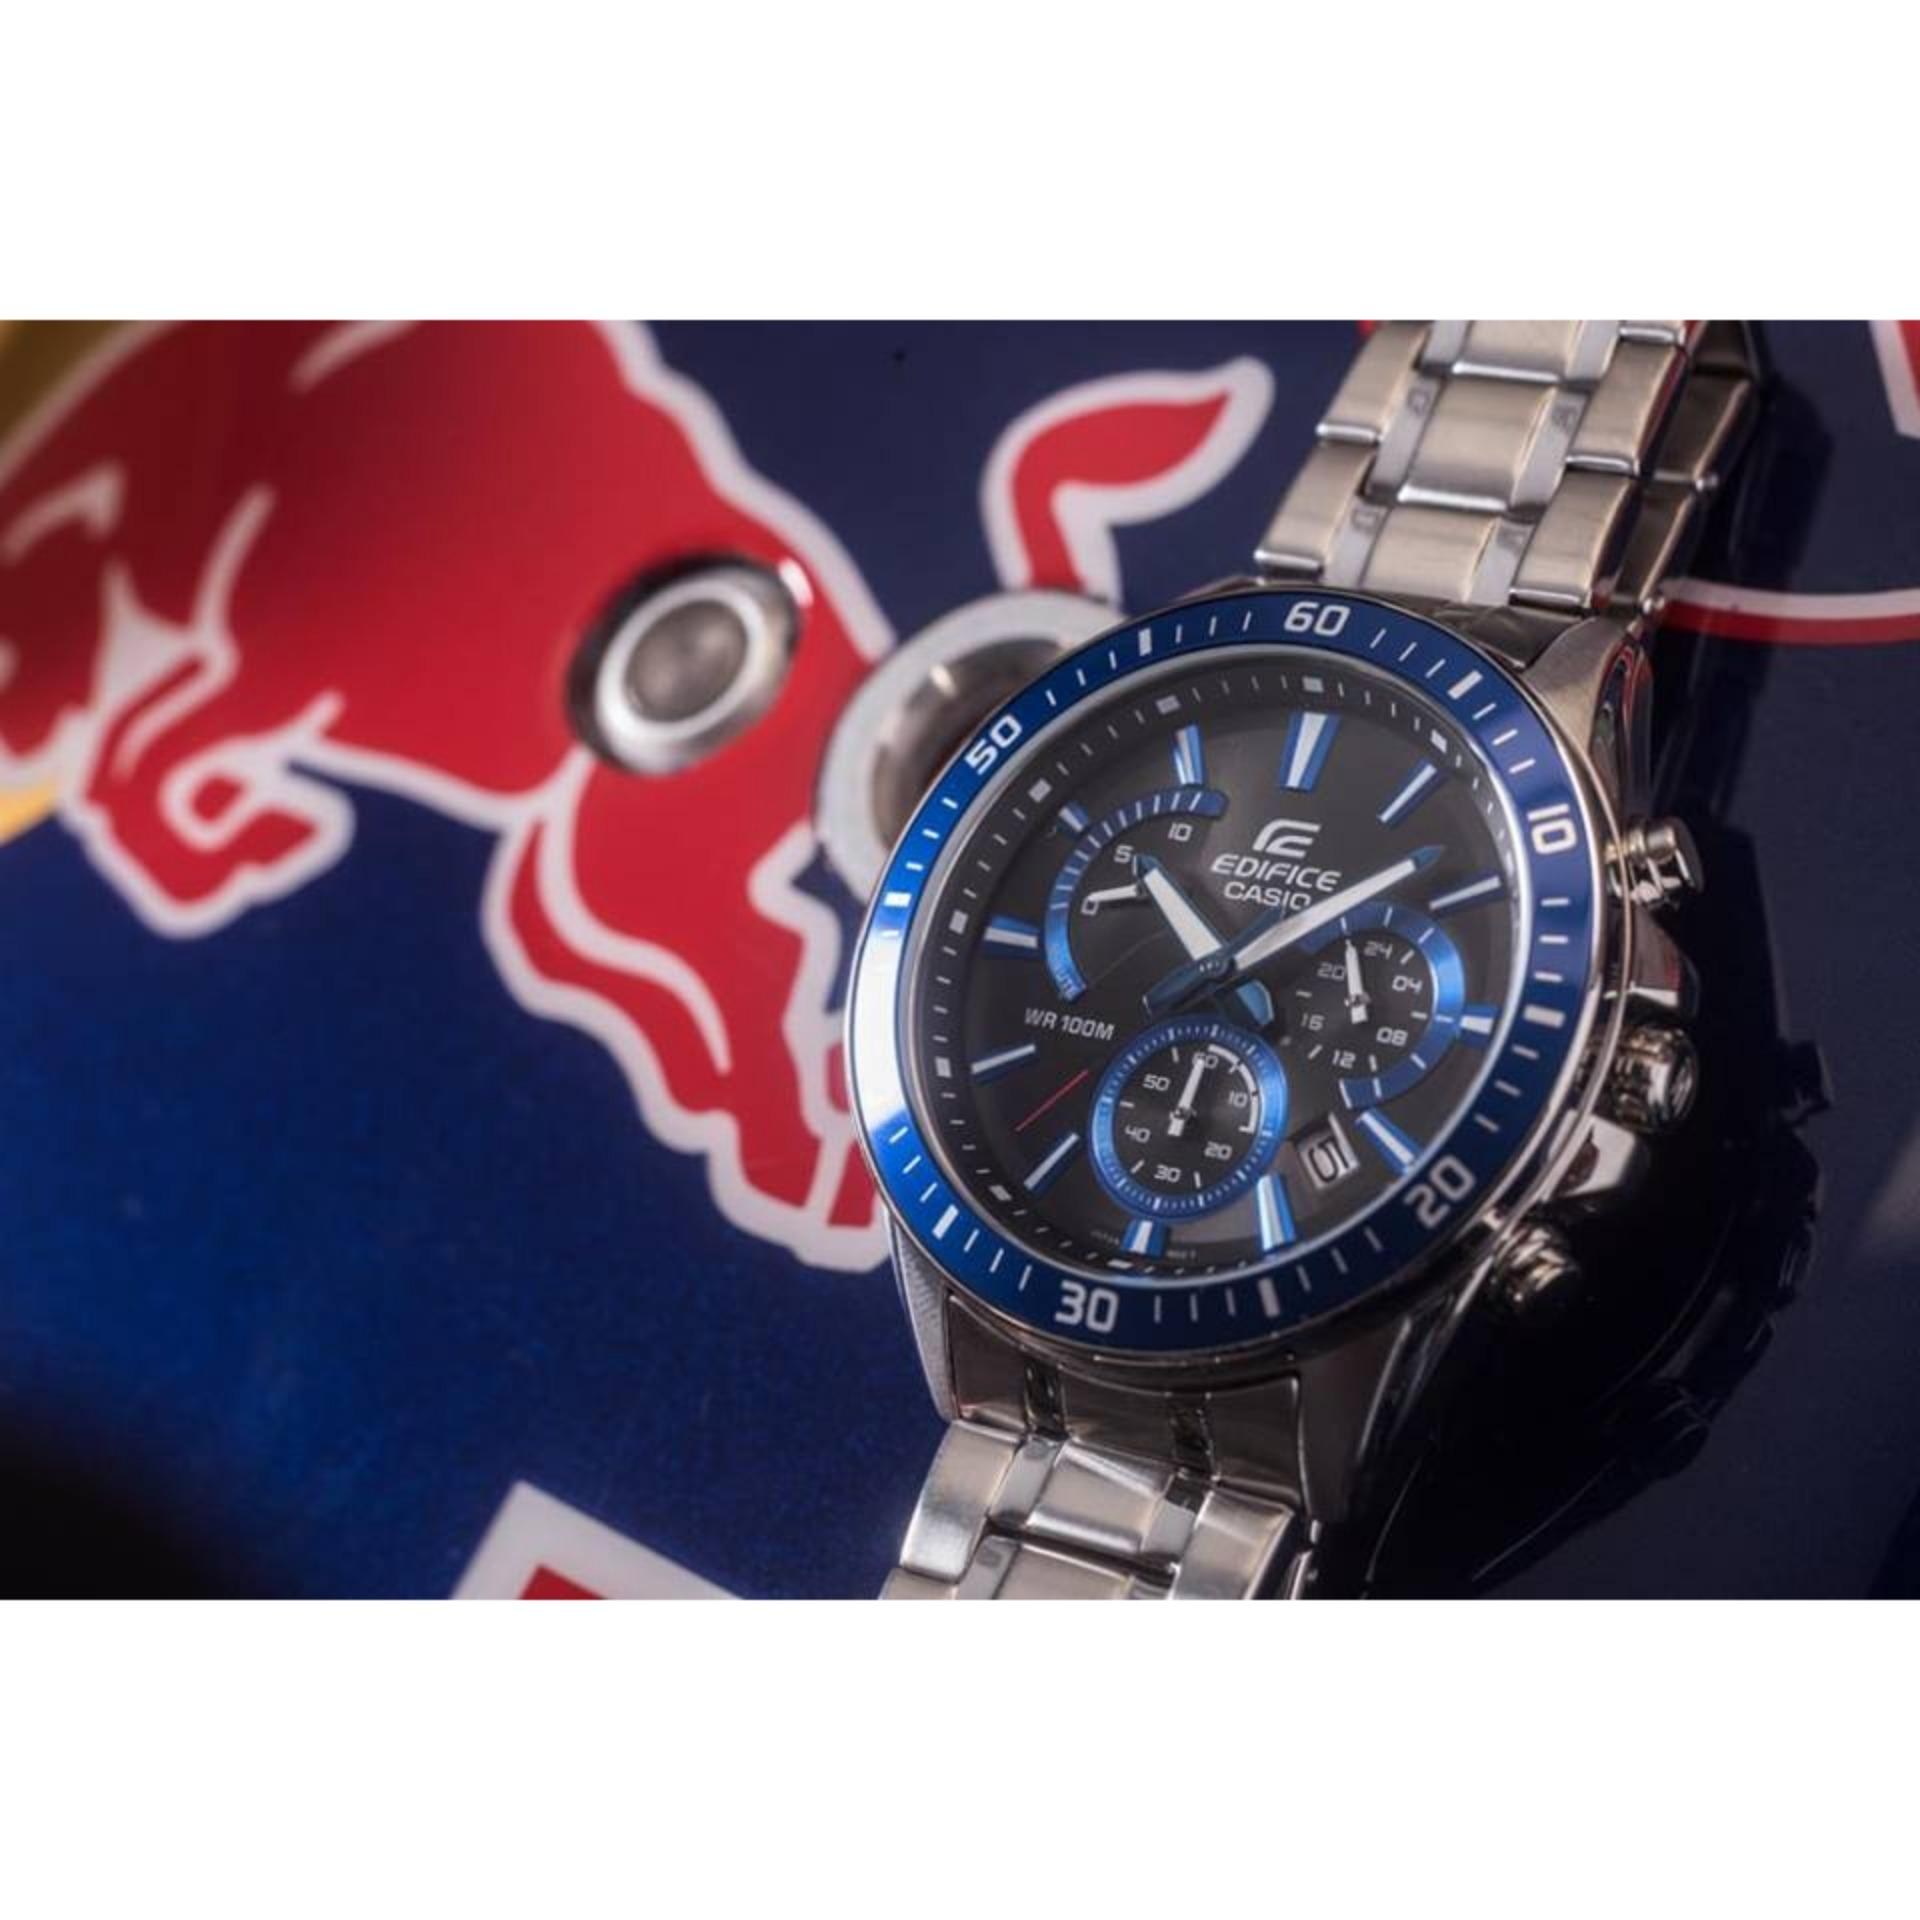 Casio Edifice Ef 539d 1avdf Jam Tangan Pria Stainlesssteel Hitam Efr 535d 1a4v Silver Merah 552d 1a2v Stainless Steel